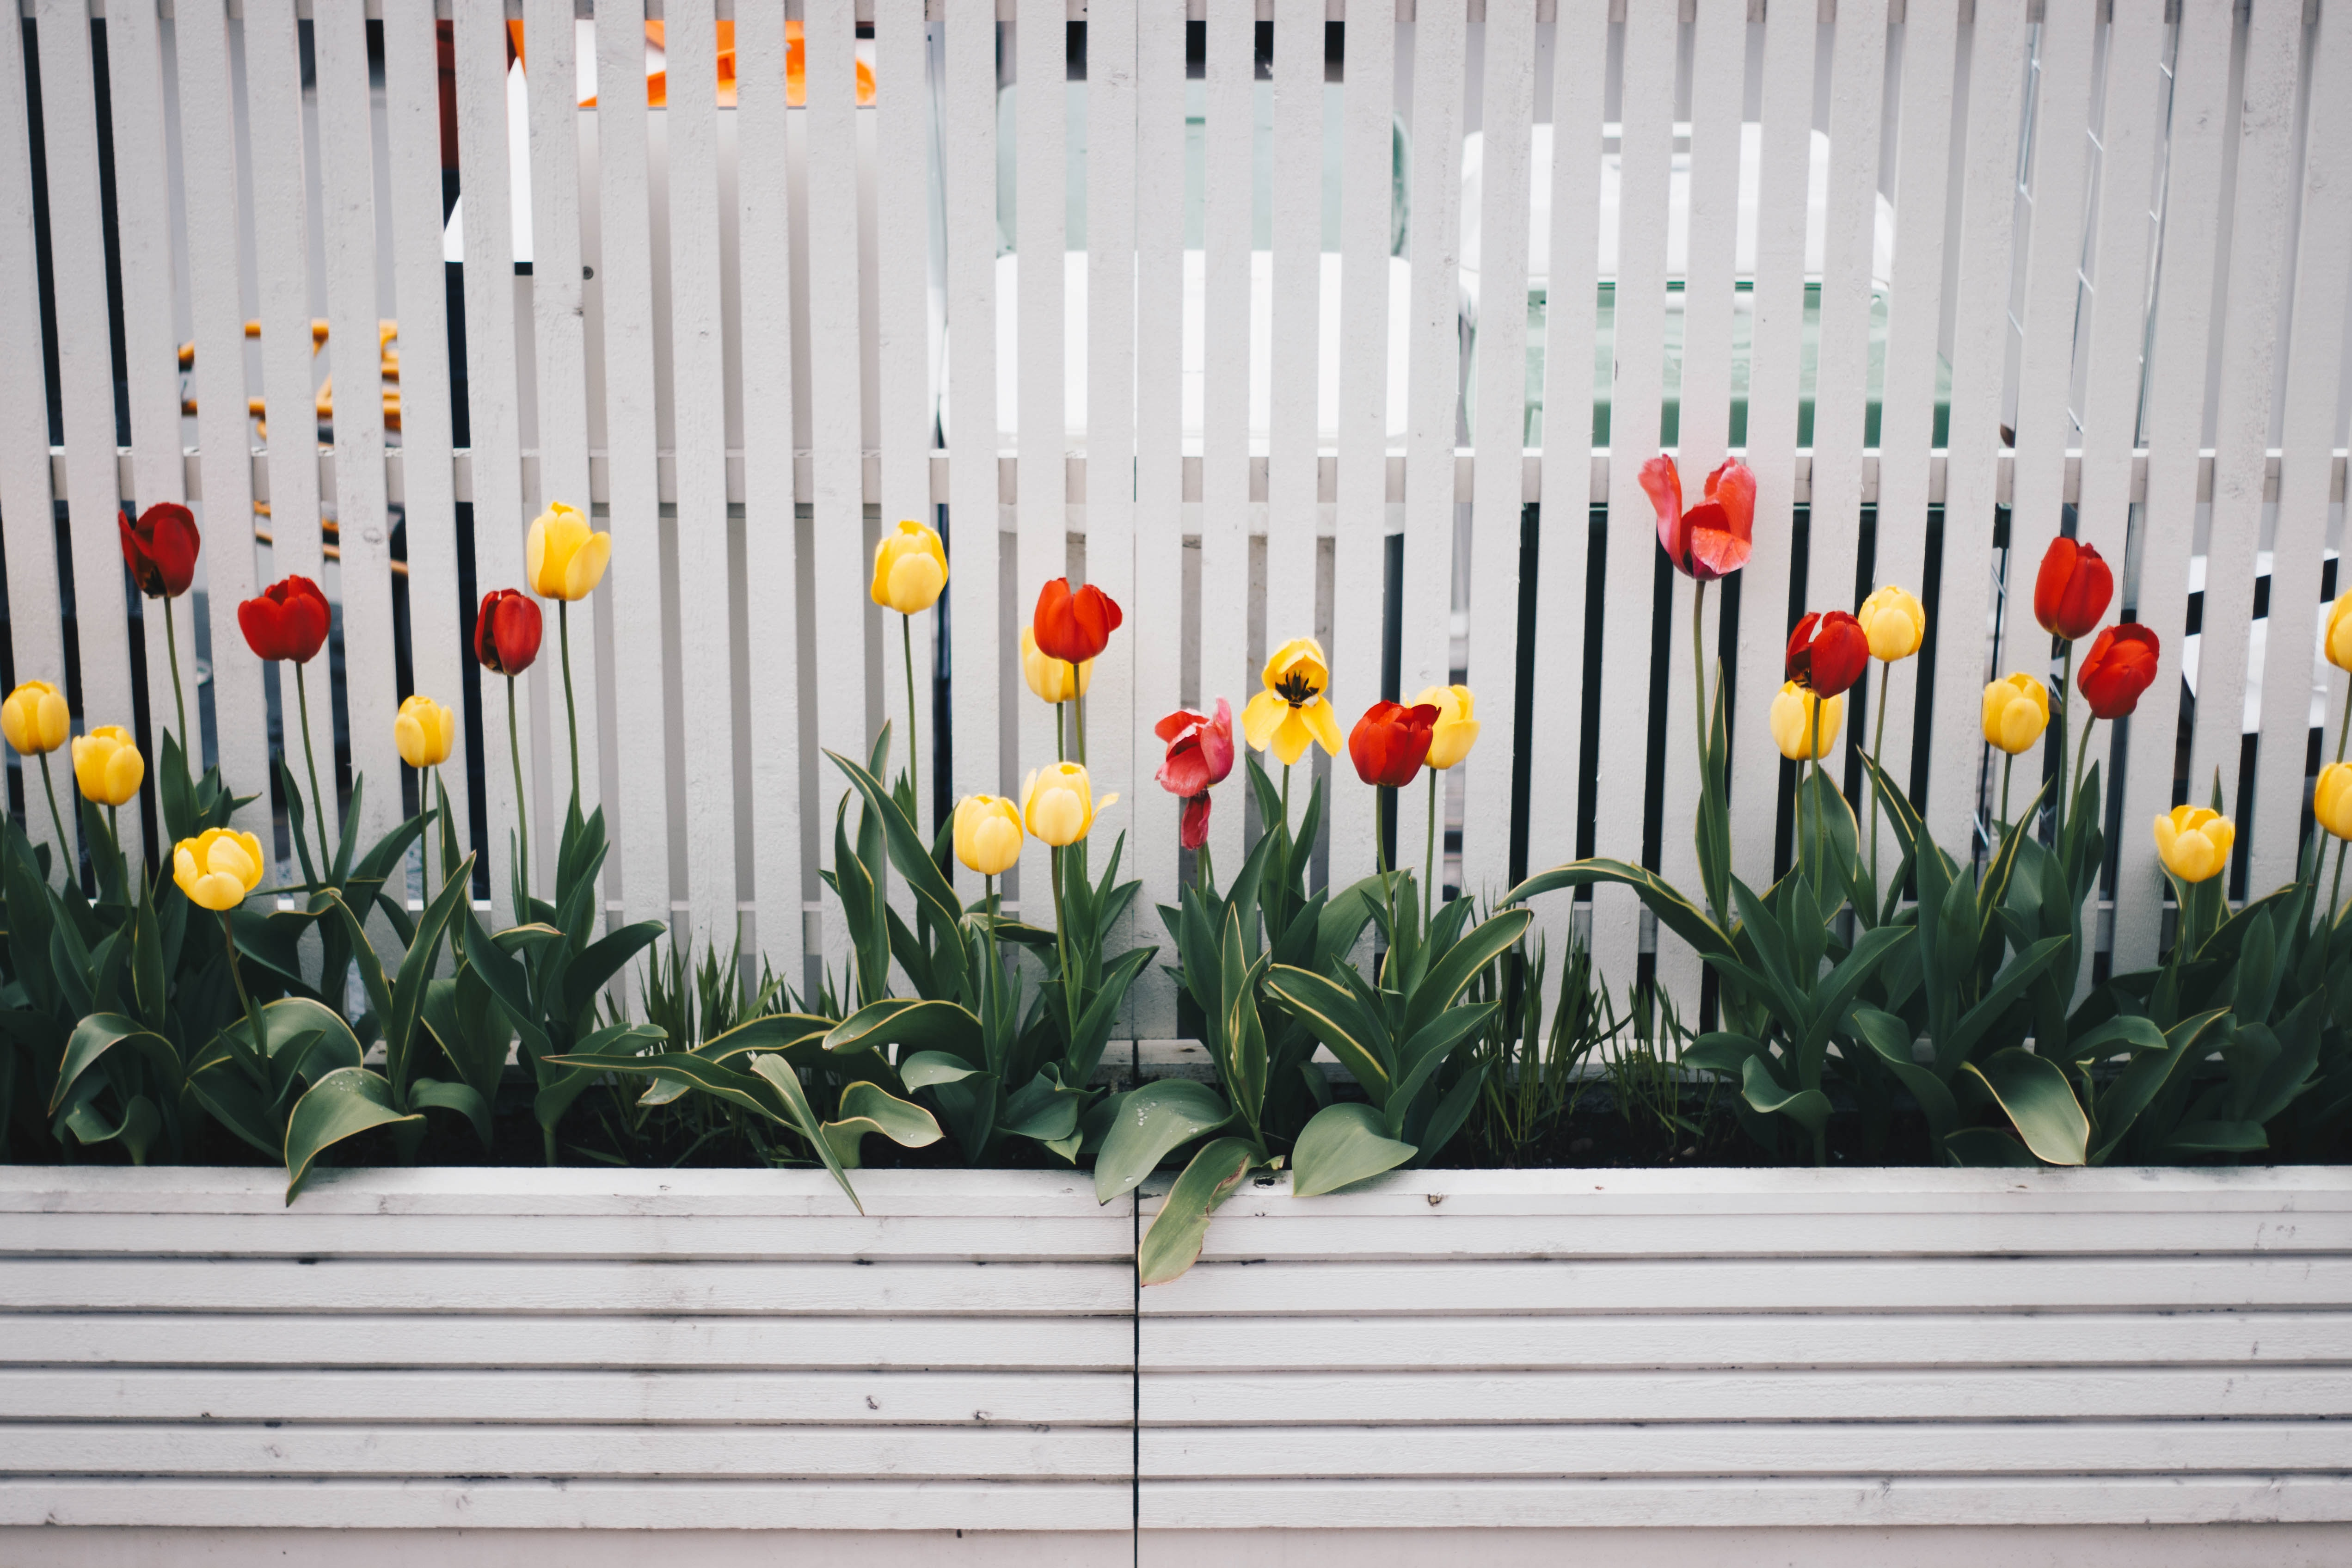 yellow-and-red-tulip-flower-plant-beside-white-fence-701758